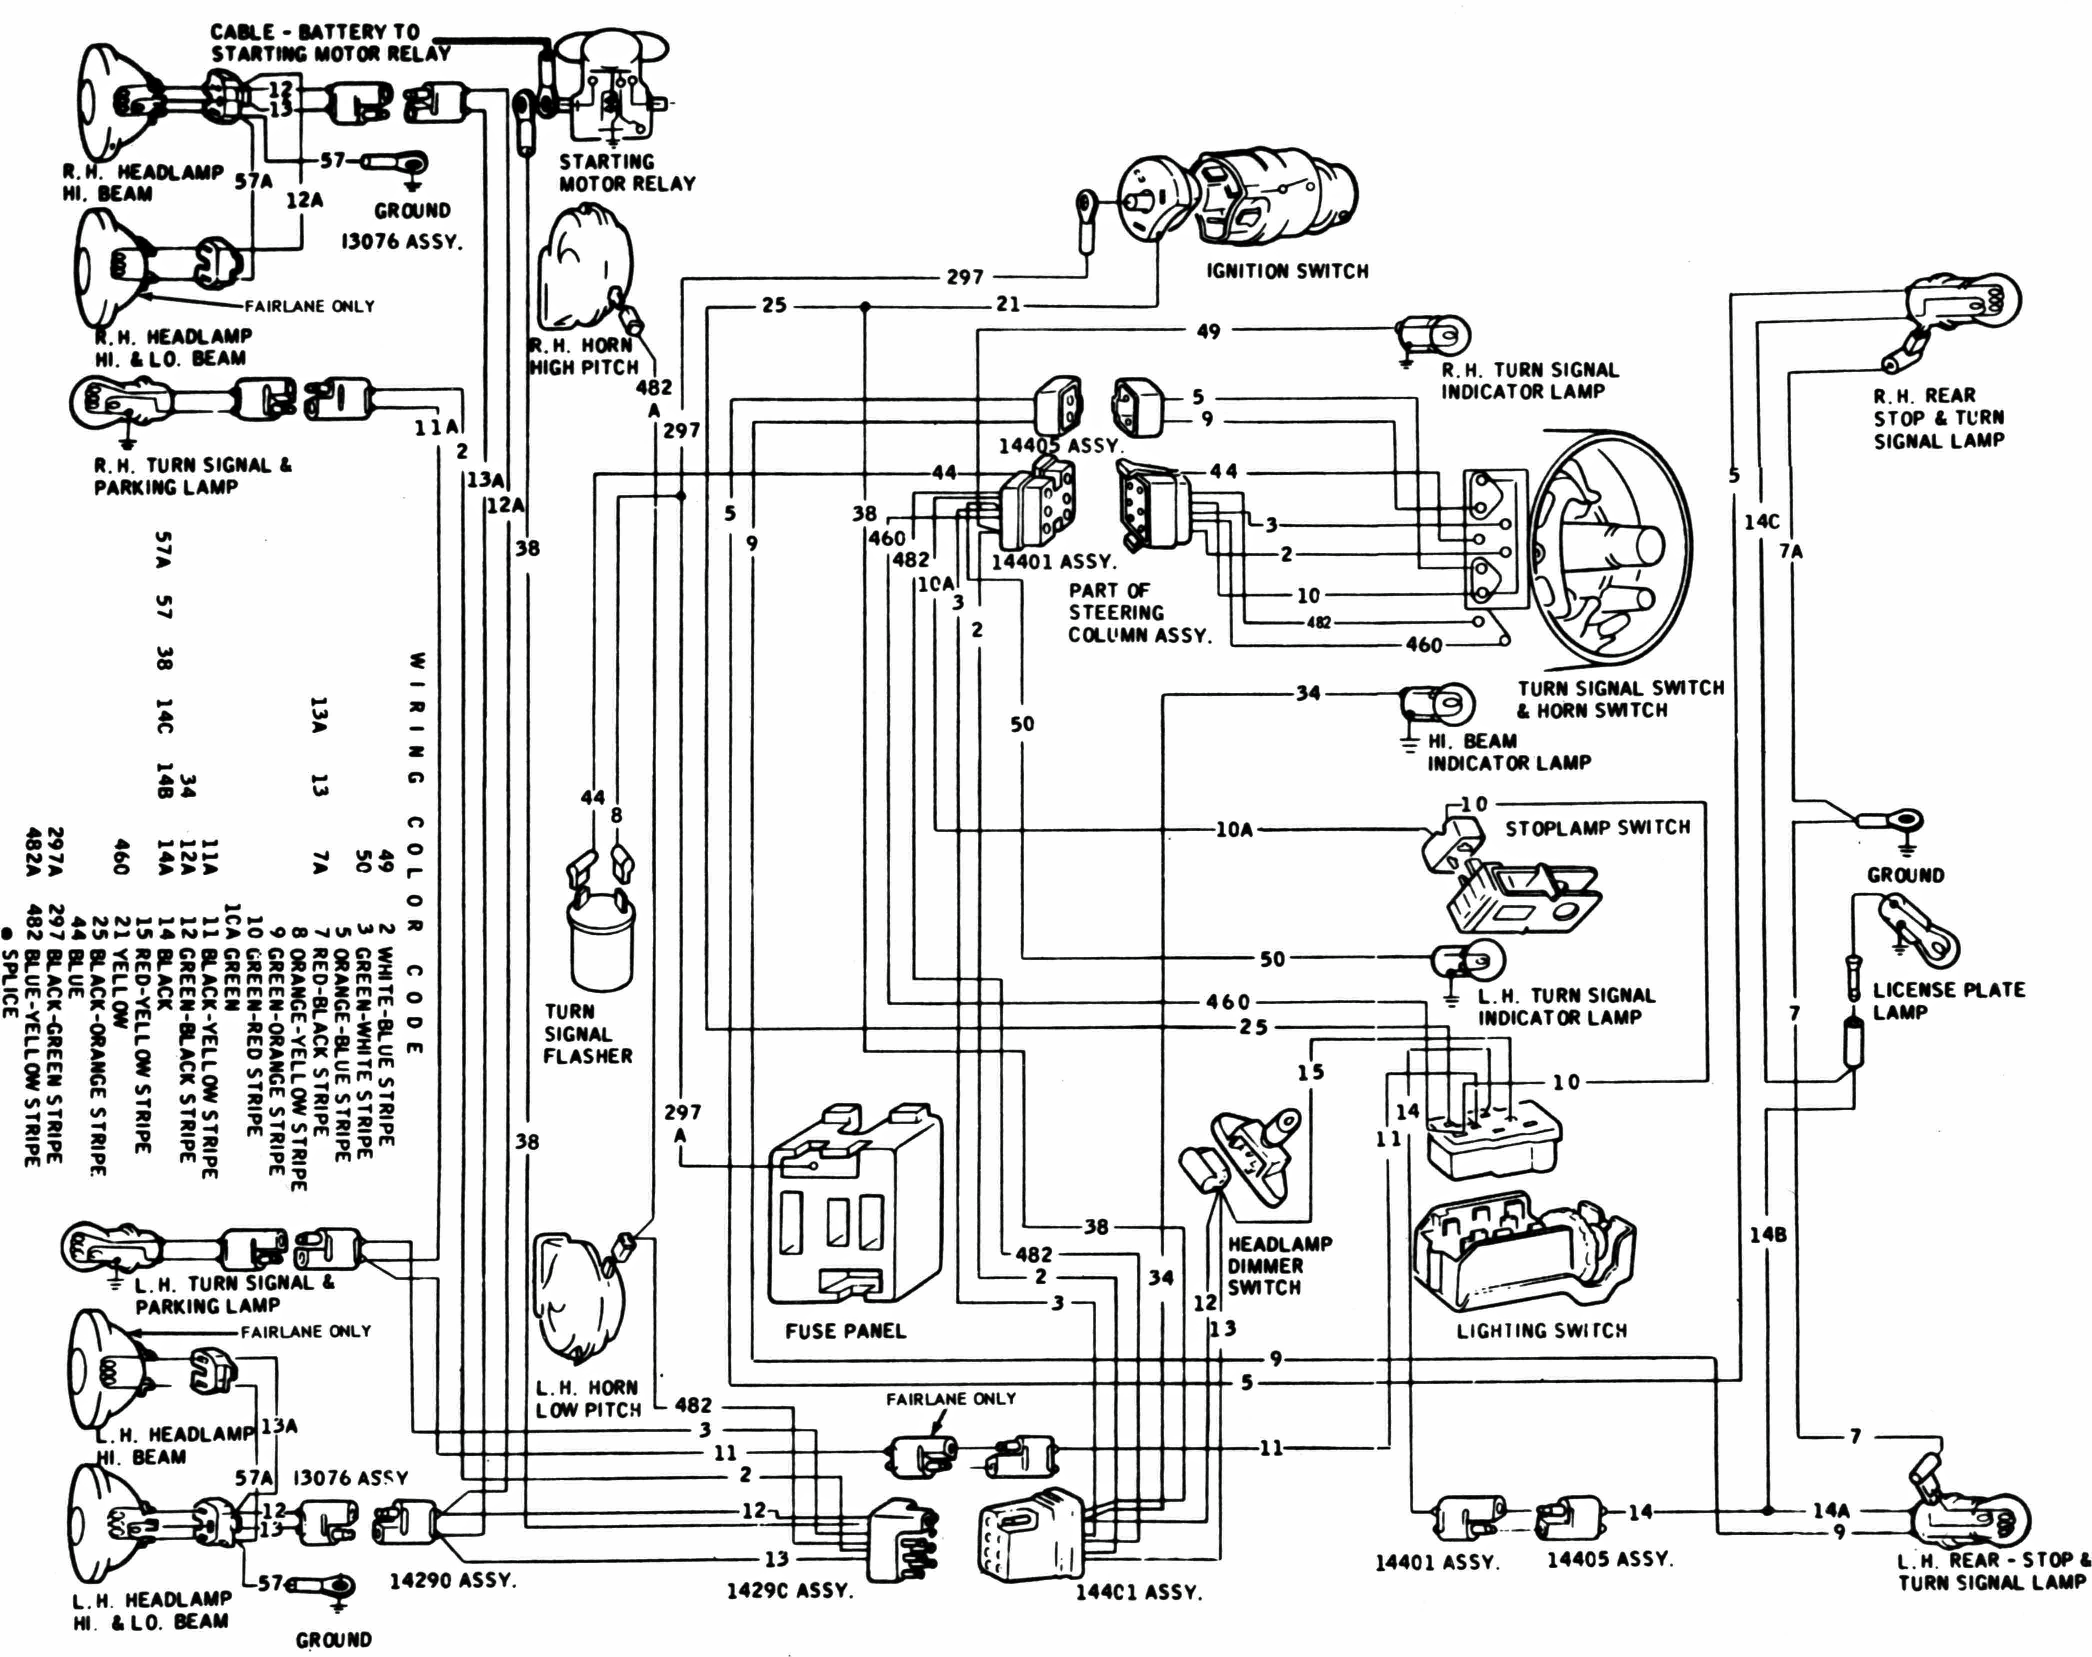 1967 Fairlane Wiring Diagram